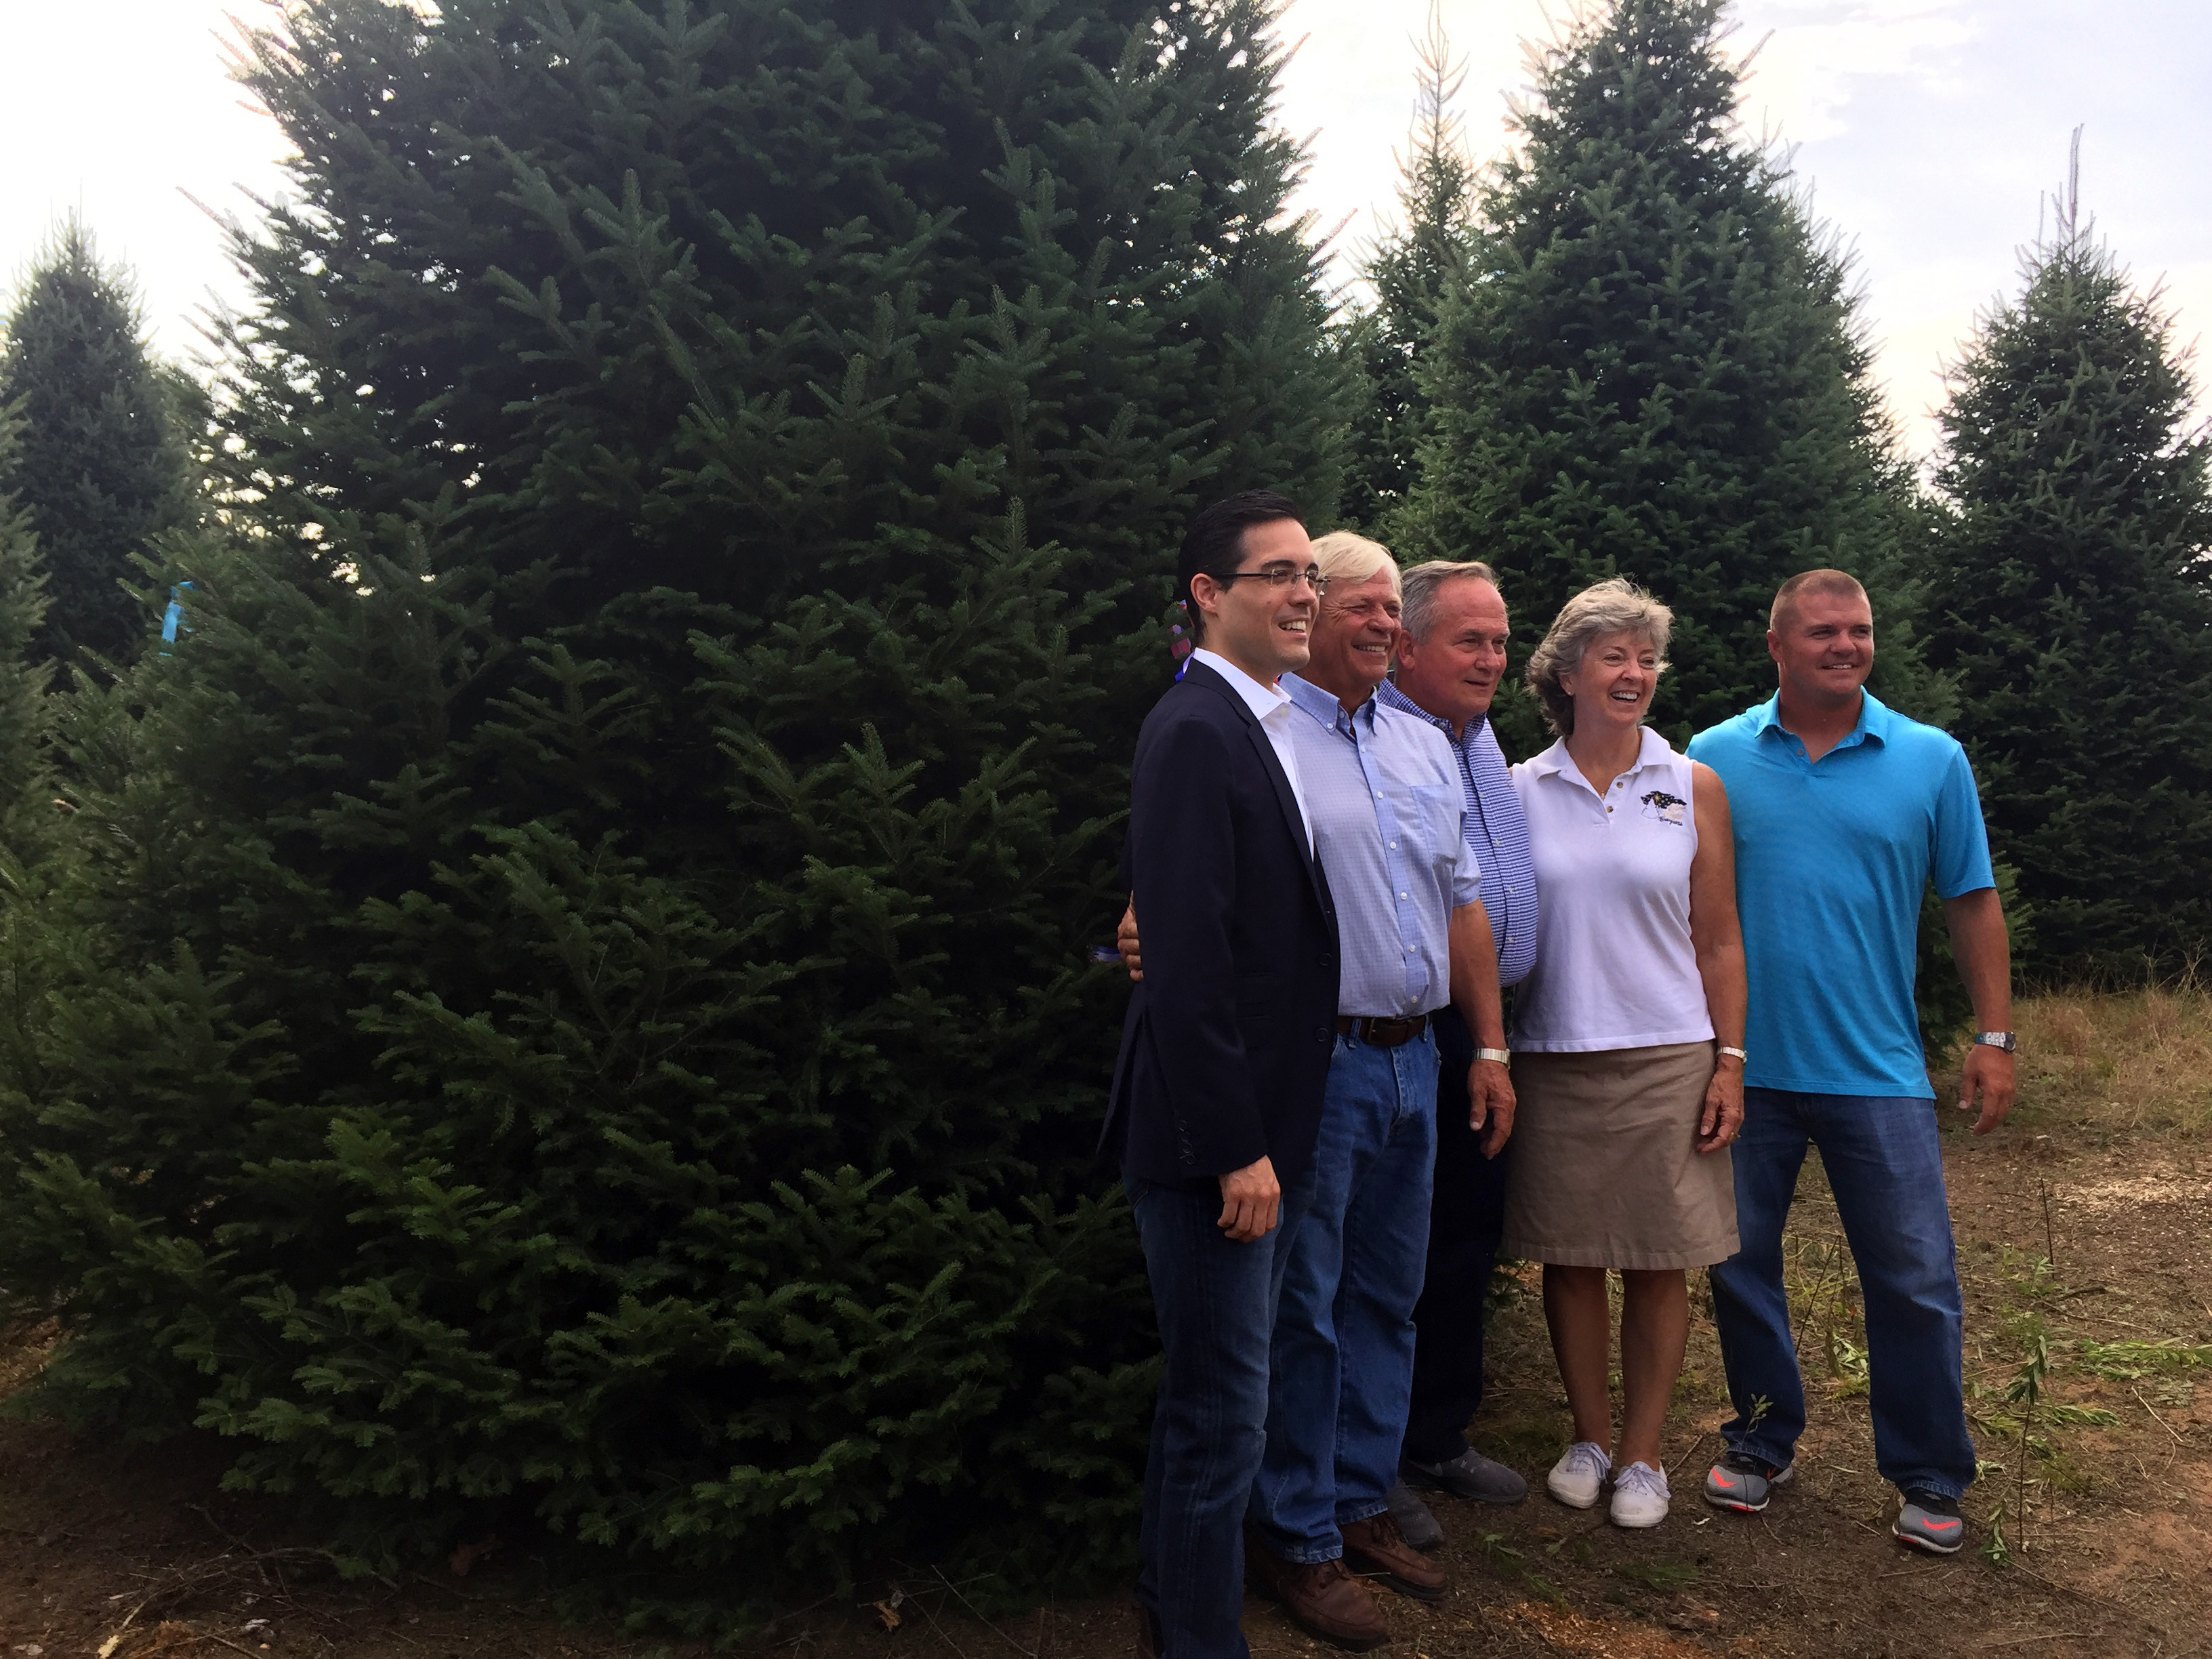 L-R: Timothy Harleth,  chief usher at the White House; Dale Haney, White House grounds superintendent; and Jim, Diane and David Chapman of Silent Night Evergreens pose for a photo Sept. 25, 2017, at Hanauer's Tree Farms in Shawano County. The tree behind them was selected as the official Christmas tree for the Blue Room in the White House. (WLUK/Pafoua Yang)